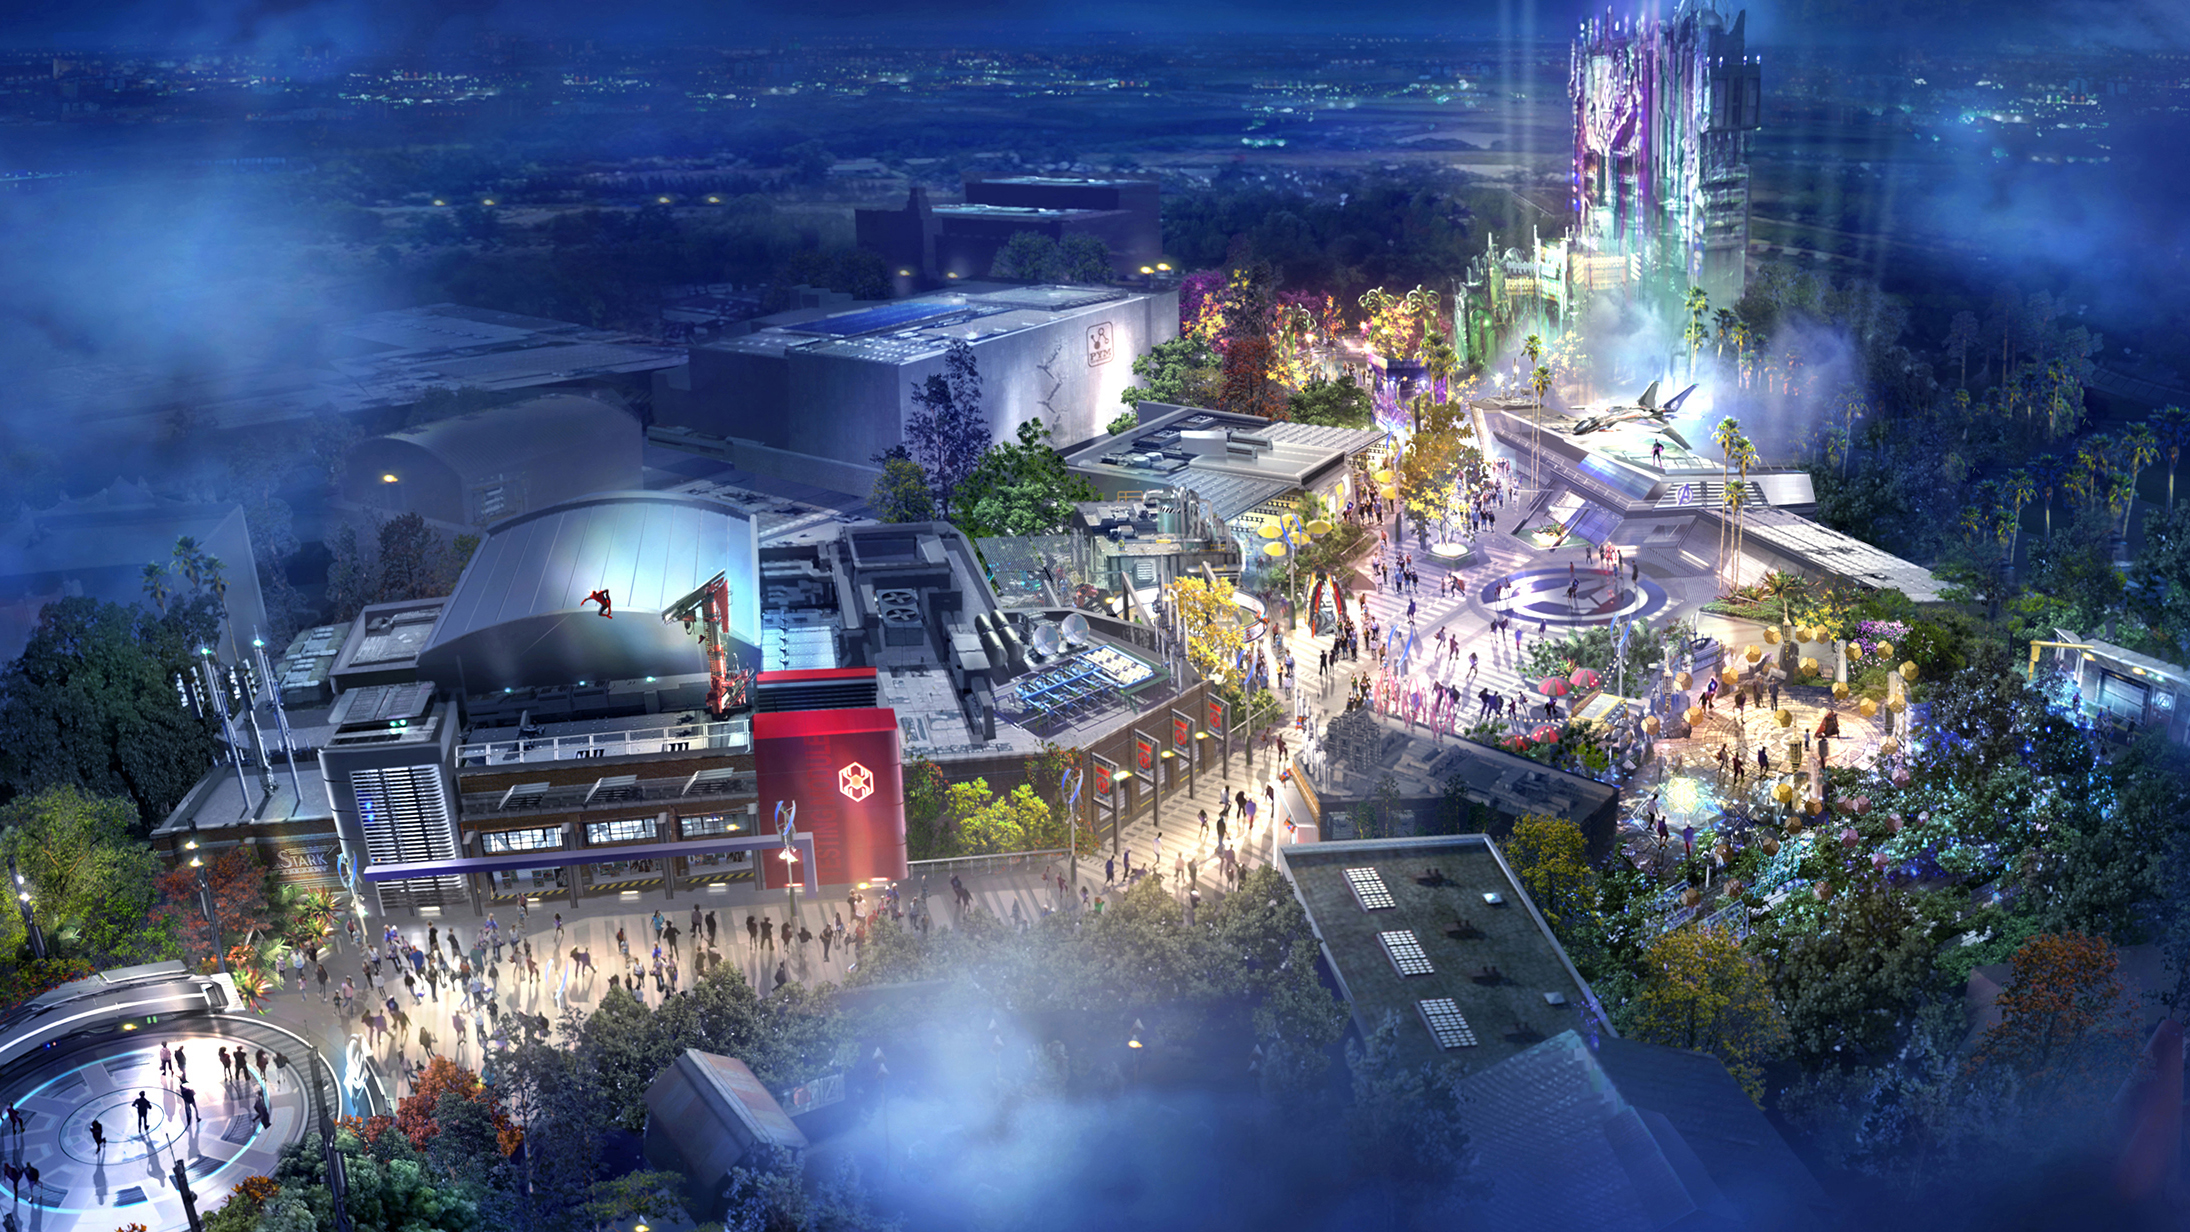 Disneyland California Adventure Park will debut Avengers Campus in 2020.